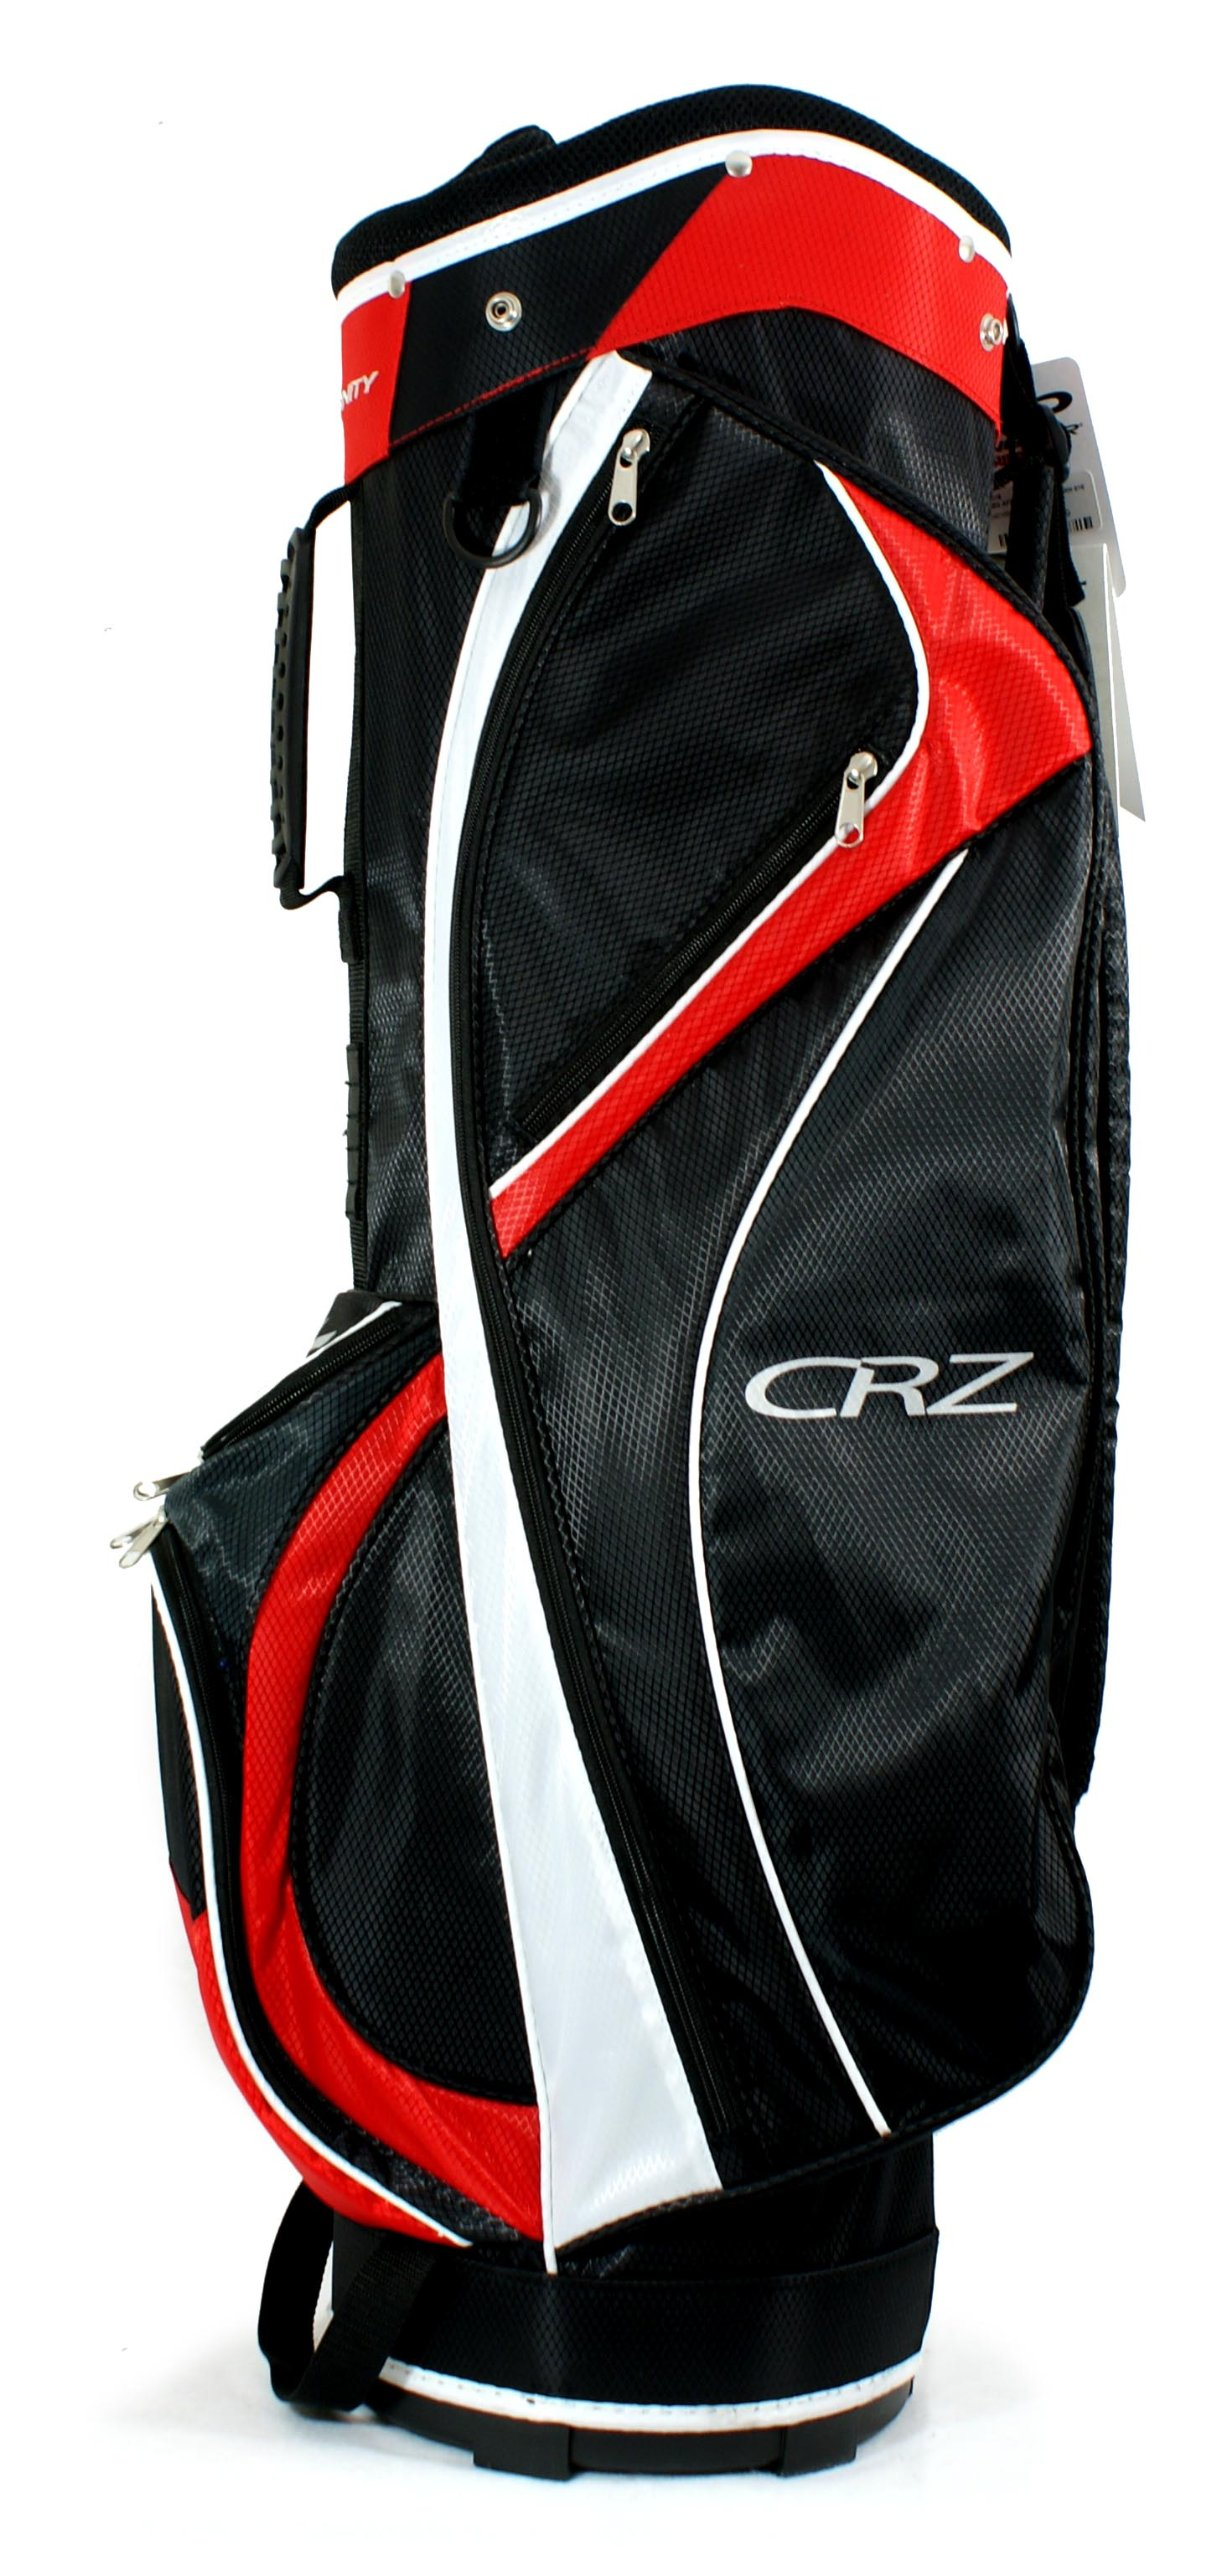 AFFINITY CRZ 9.5 Golf Cart Bag, Black/Red/White by Affinity (Image #2)